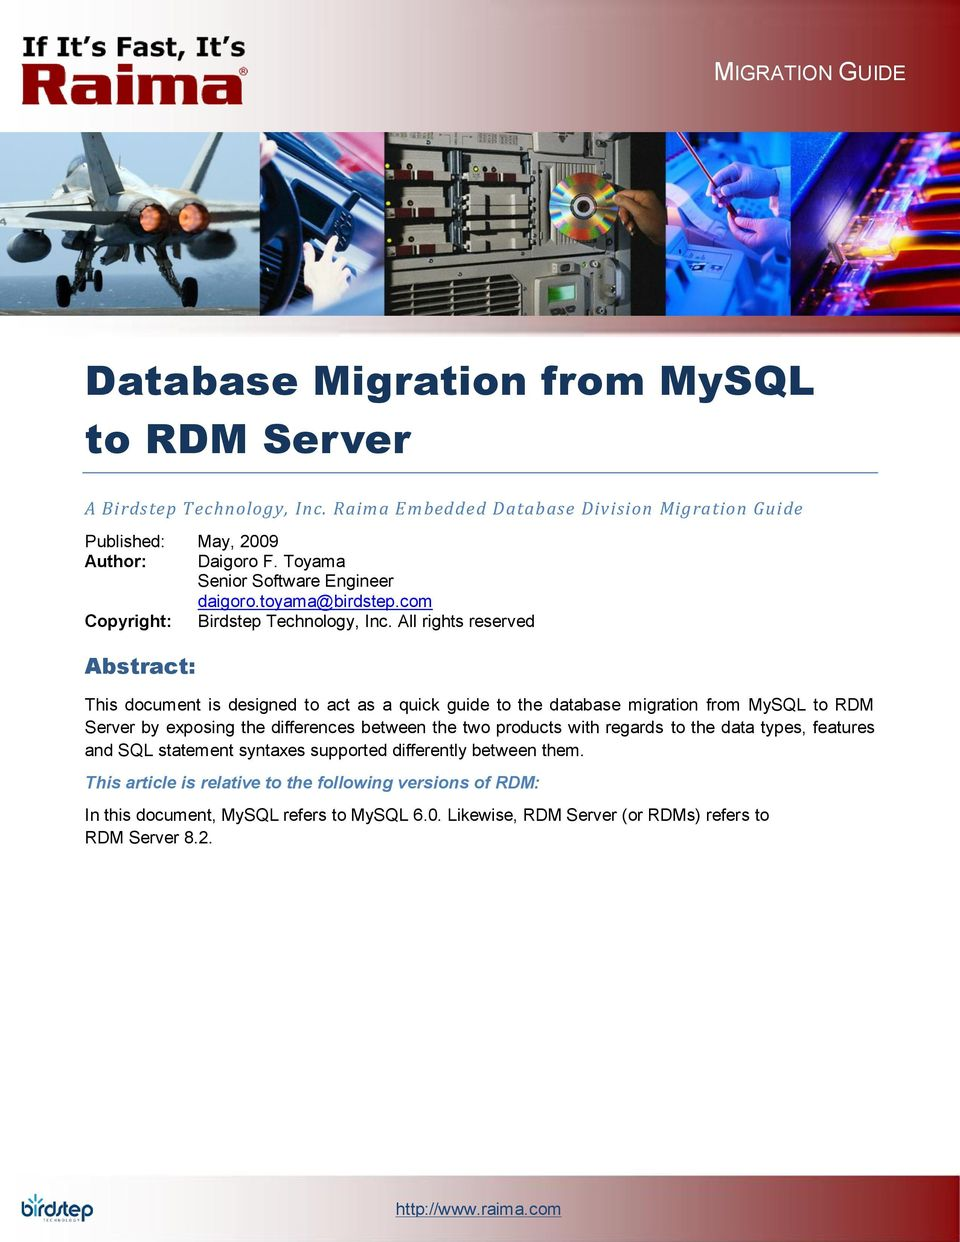 All rights reserved Abstract: This document is designed to act as a quick guide to the database migration from MySQL to RDM Server by exposing the differences between the two